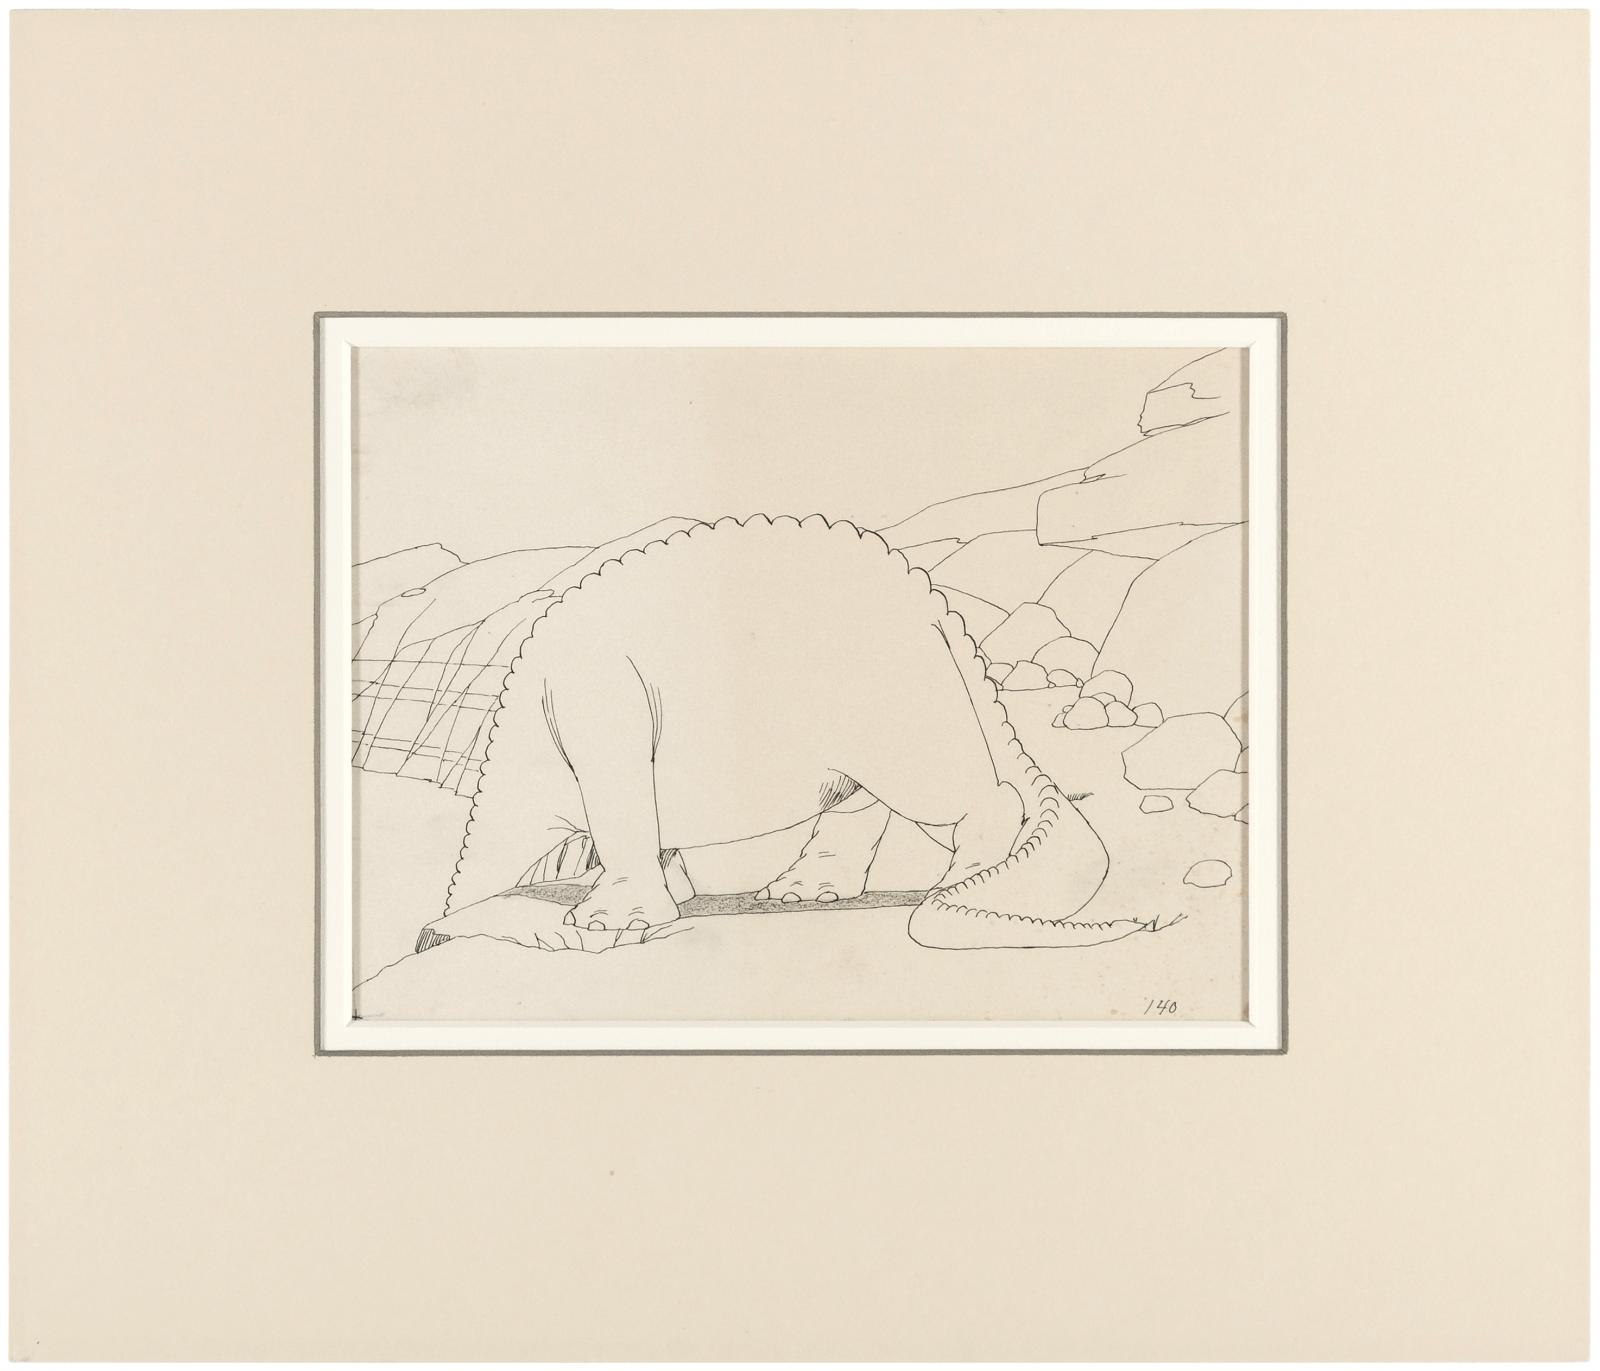 Gertie the Dinosaur, original by Winsor McCay